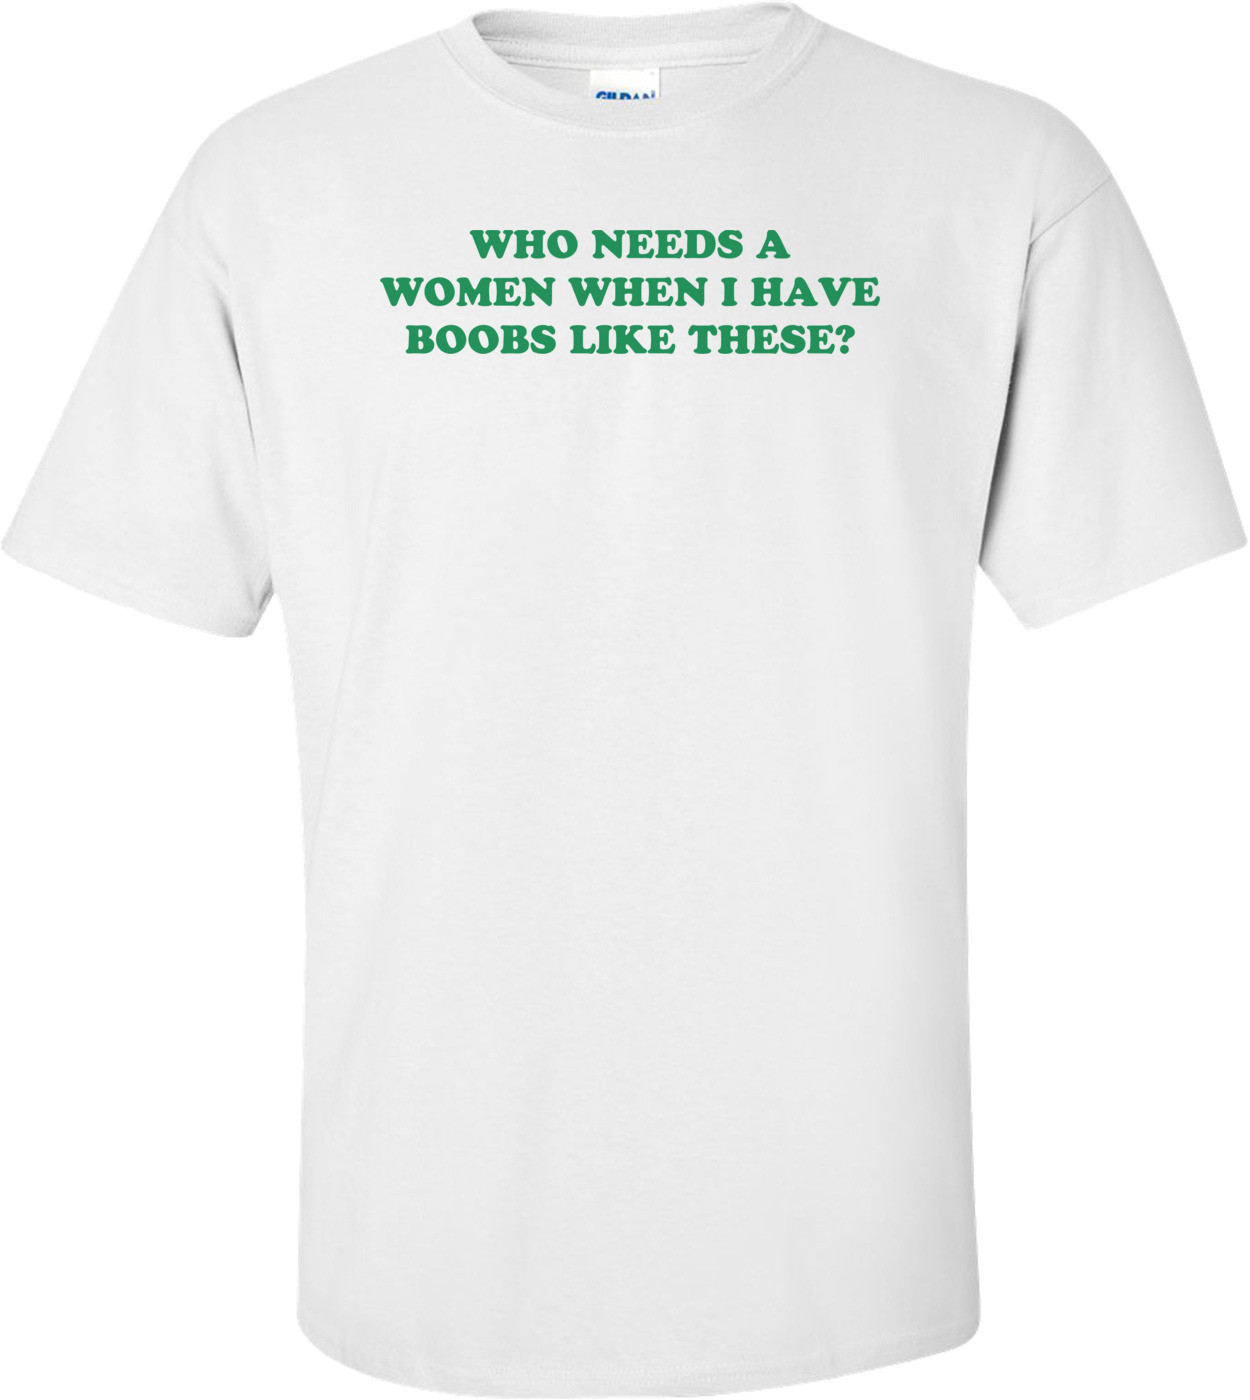 WHO NEEDS A WOMEN WHEN I HAVE BOOBS LIKE THESE? Shirt